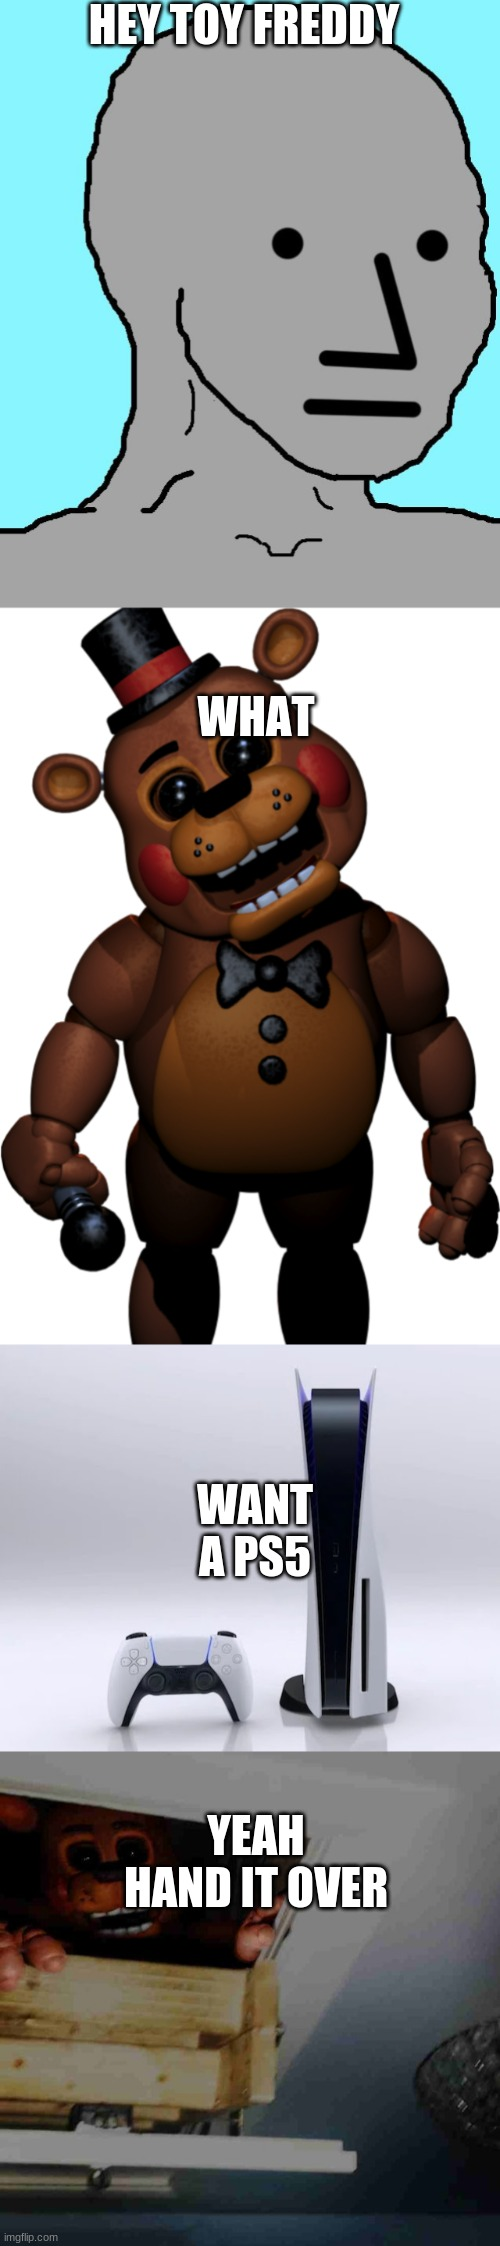 Gamer feddy |  HEY TOY FREDDY; WHAT; WANT A PS5; YEAH HAND IT OVER | image tagged in memes,npc,black eyes toy freddy,ps5,toy freddy | made w/ Imgflip meme maker